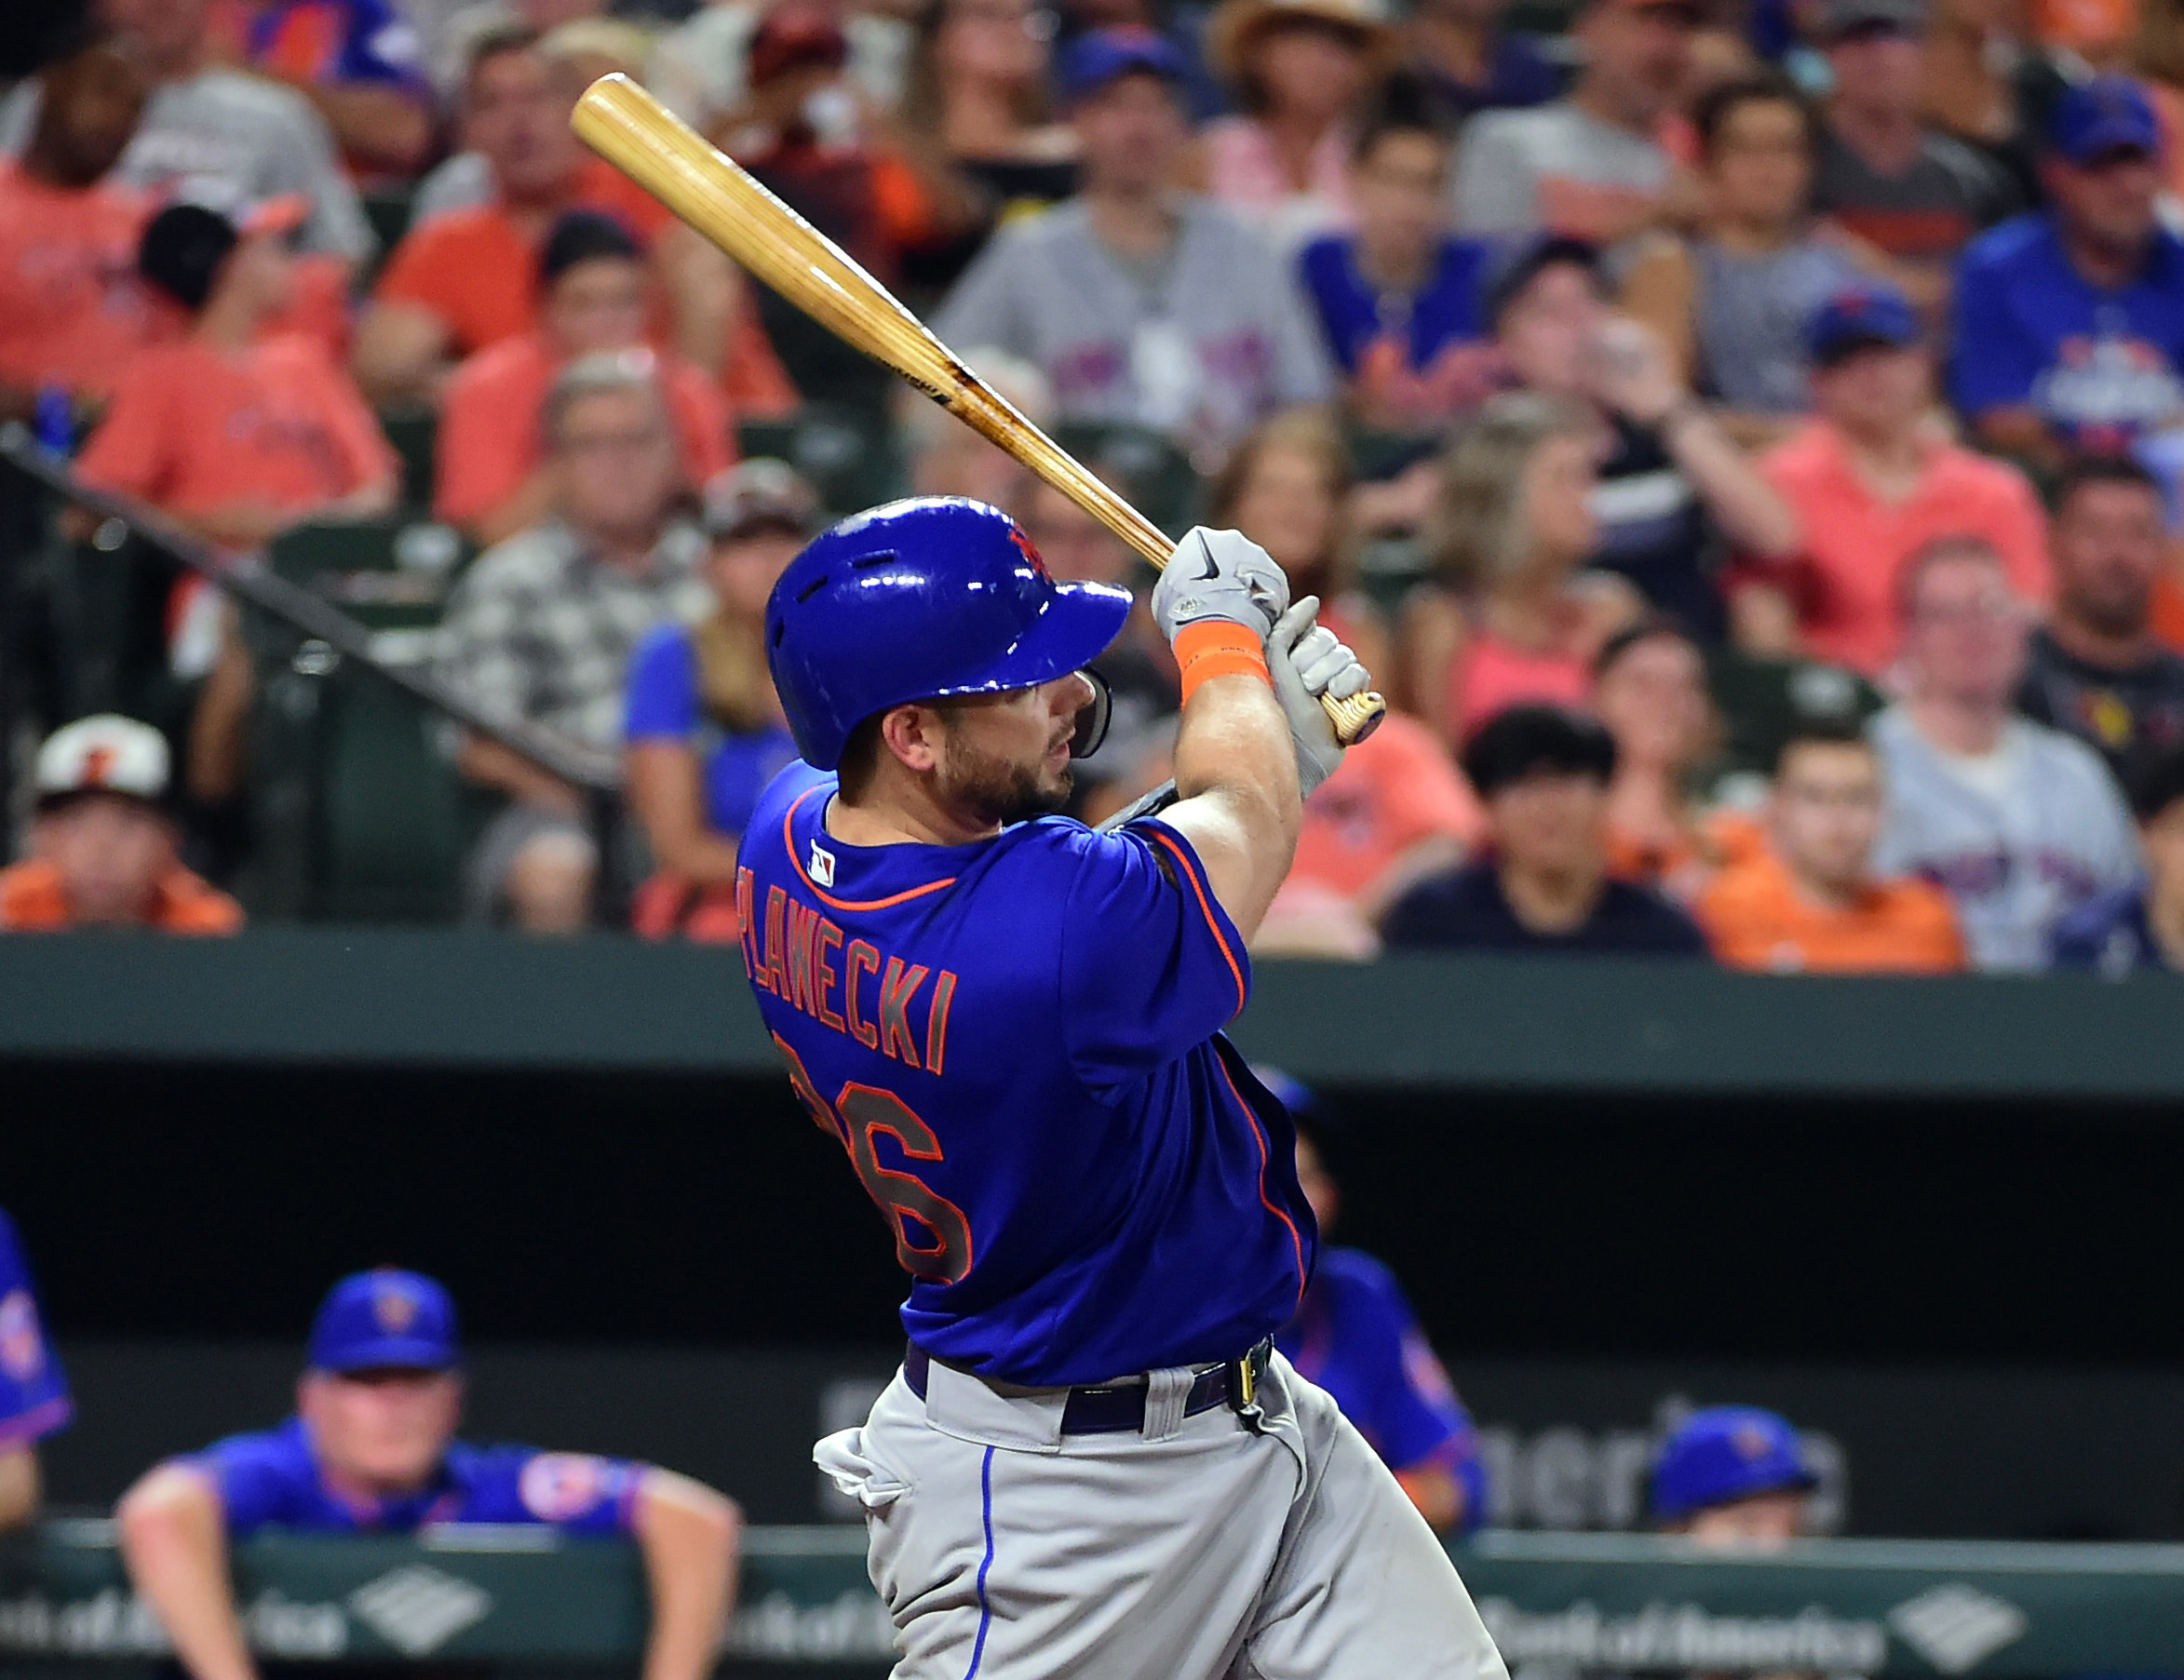 8/16/18 Game Preview: New York Mets at Philadelphia Phillies, Game 2